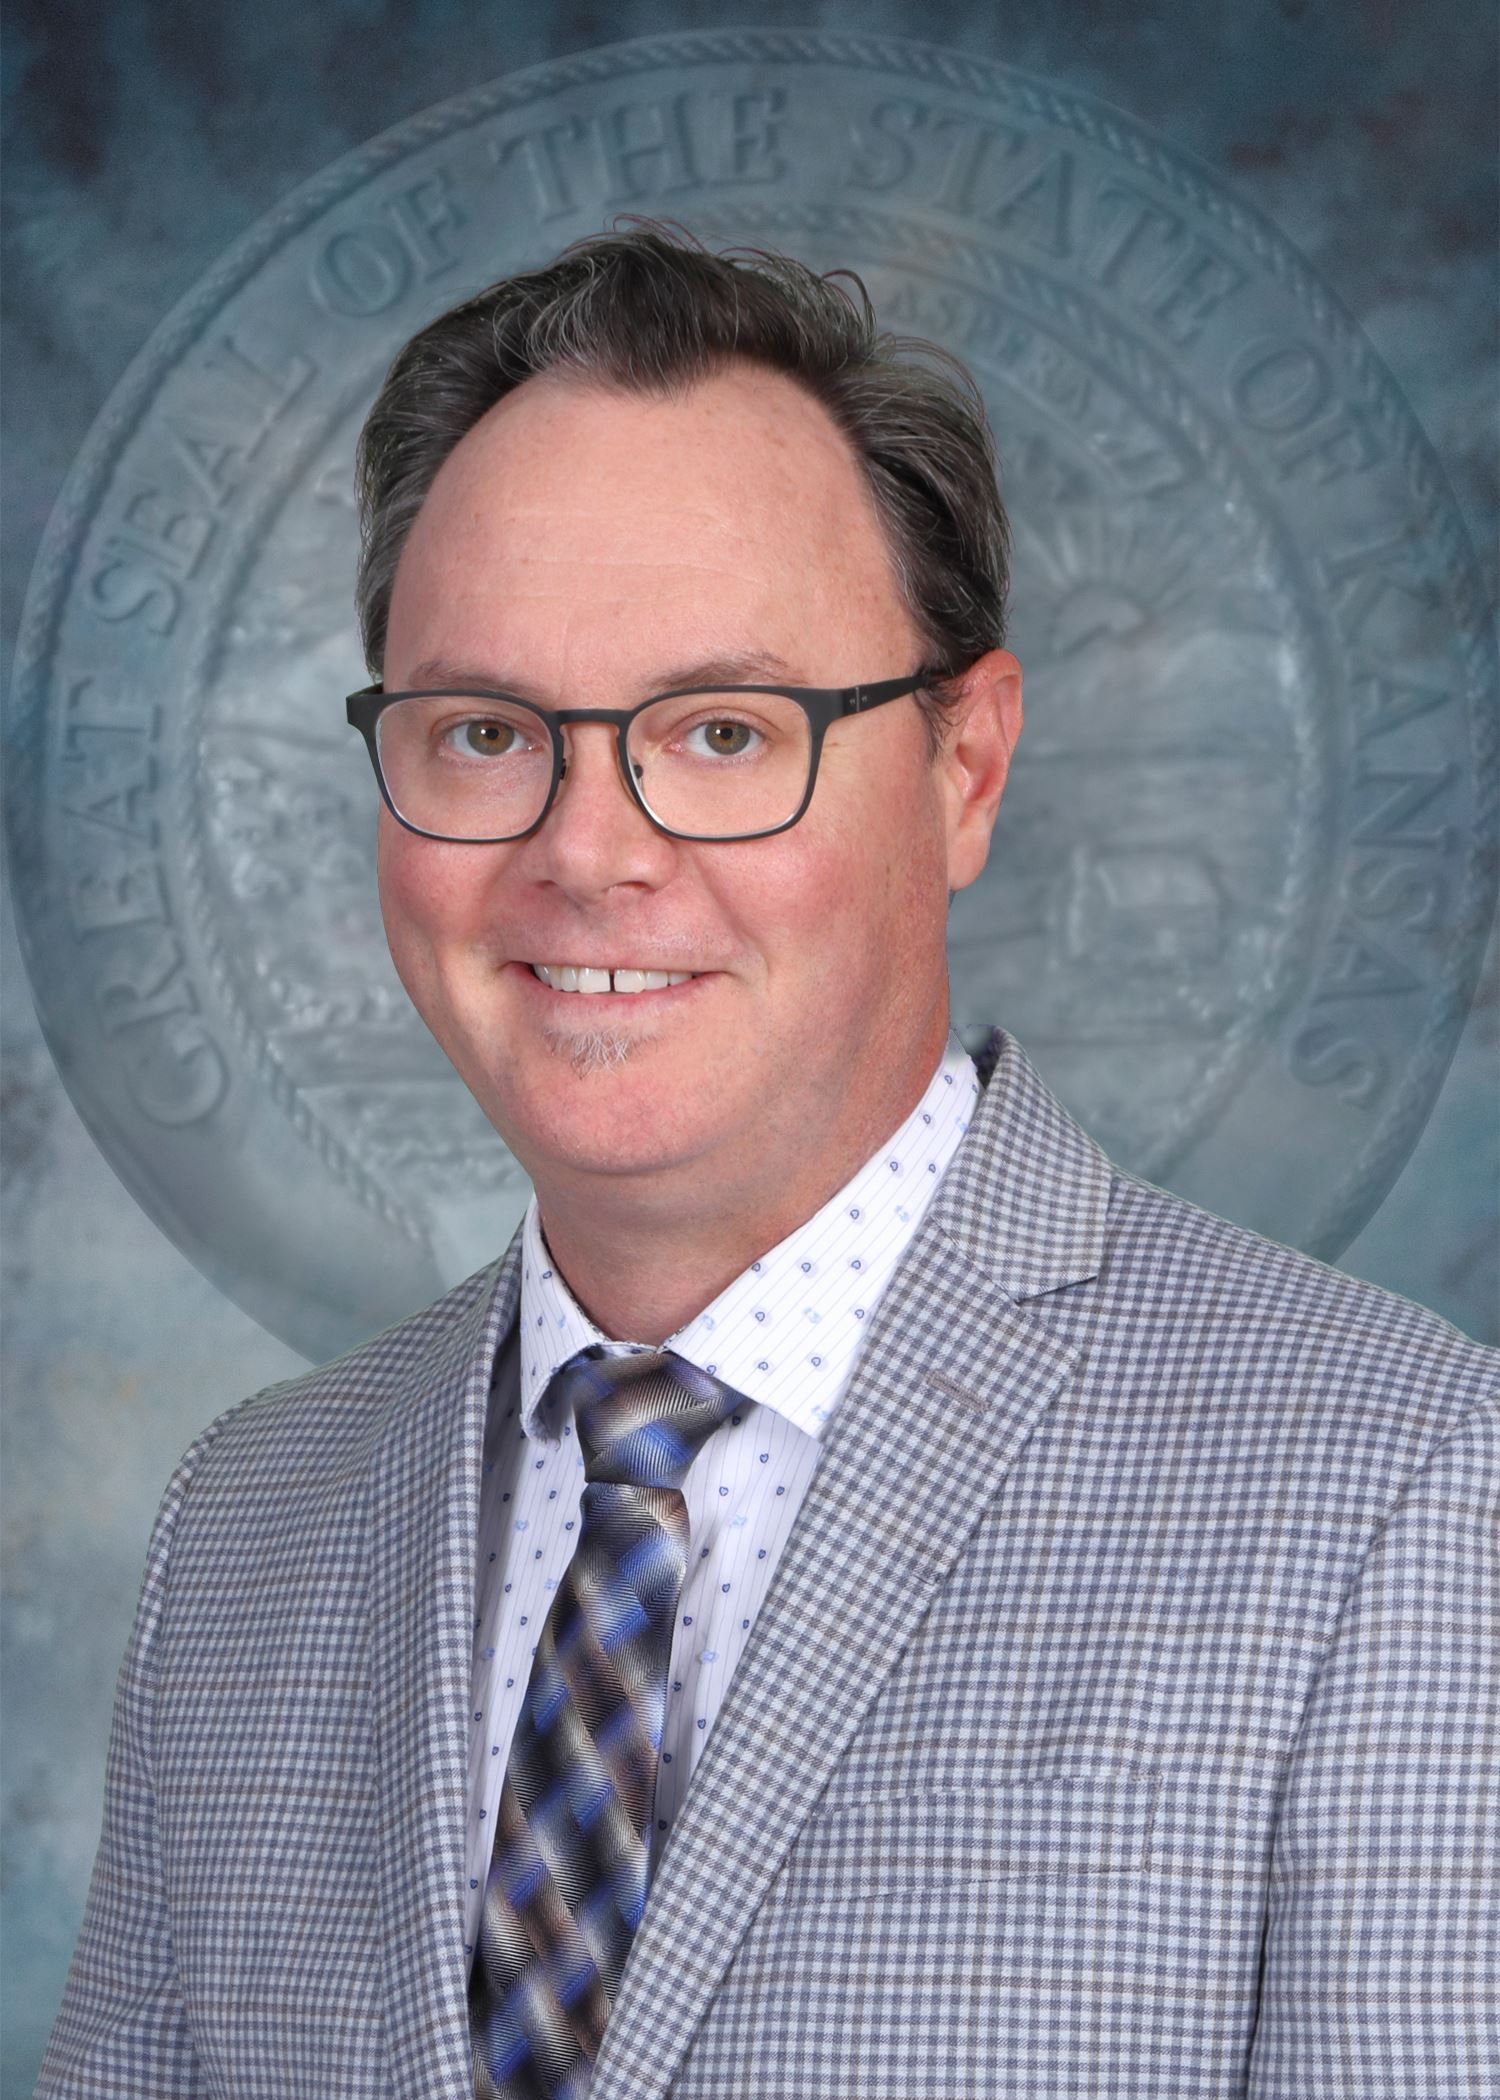 Official Portrait of Eric Norris, State Librarian of Kansas